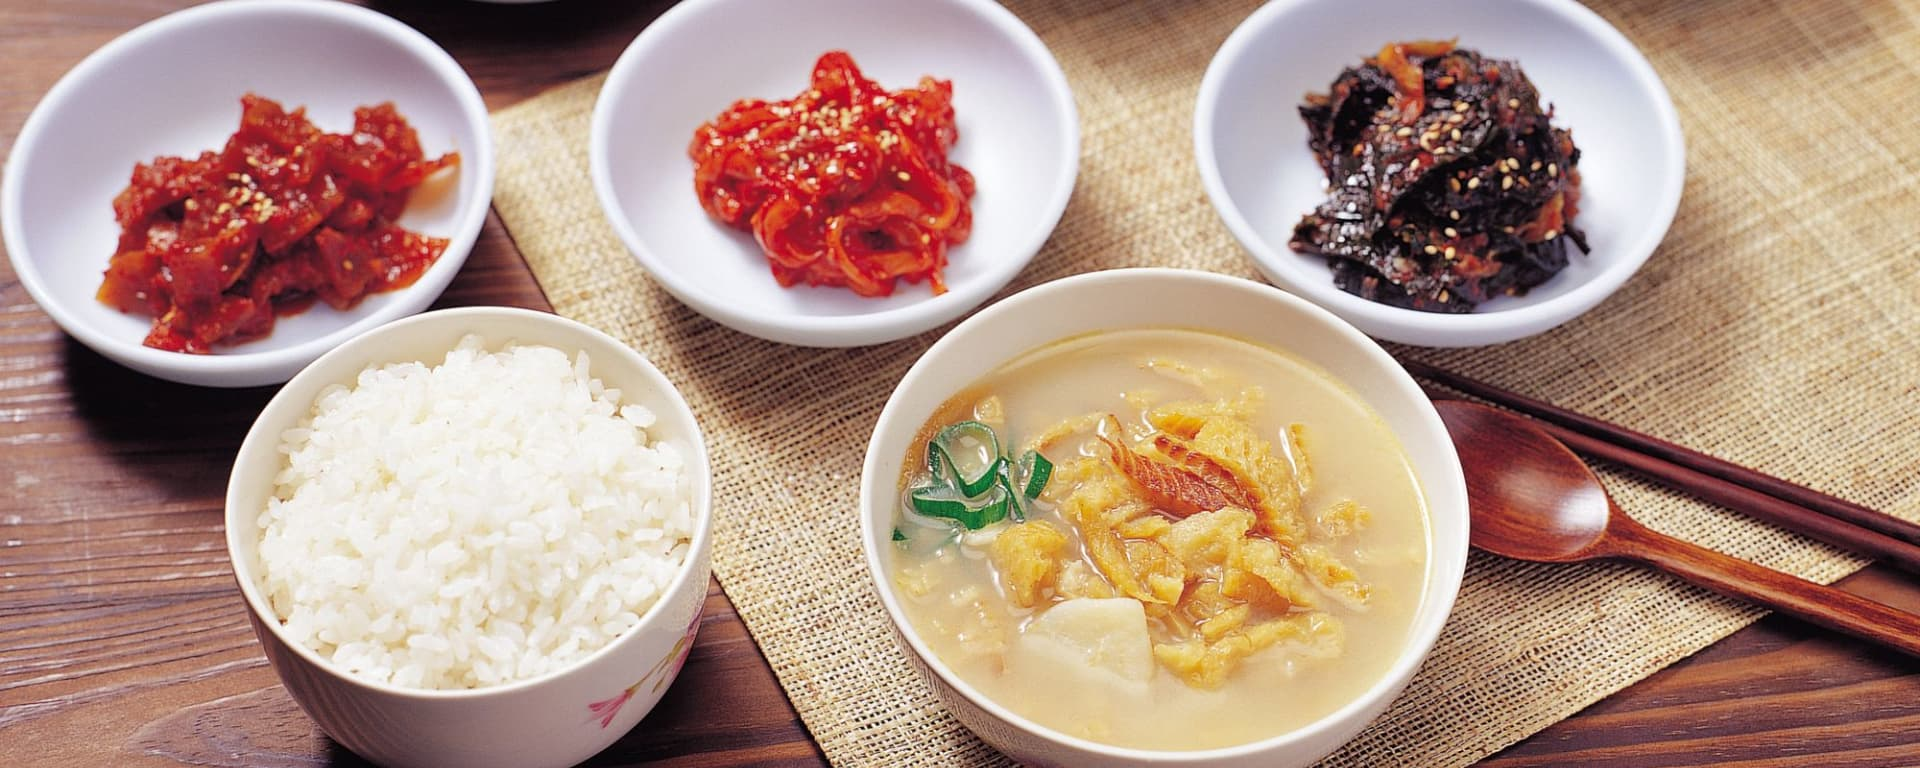 Koreanischer Abend in Seoul: Mouthwatering food